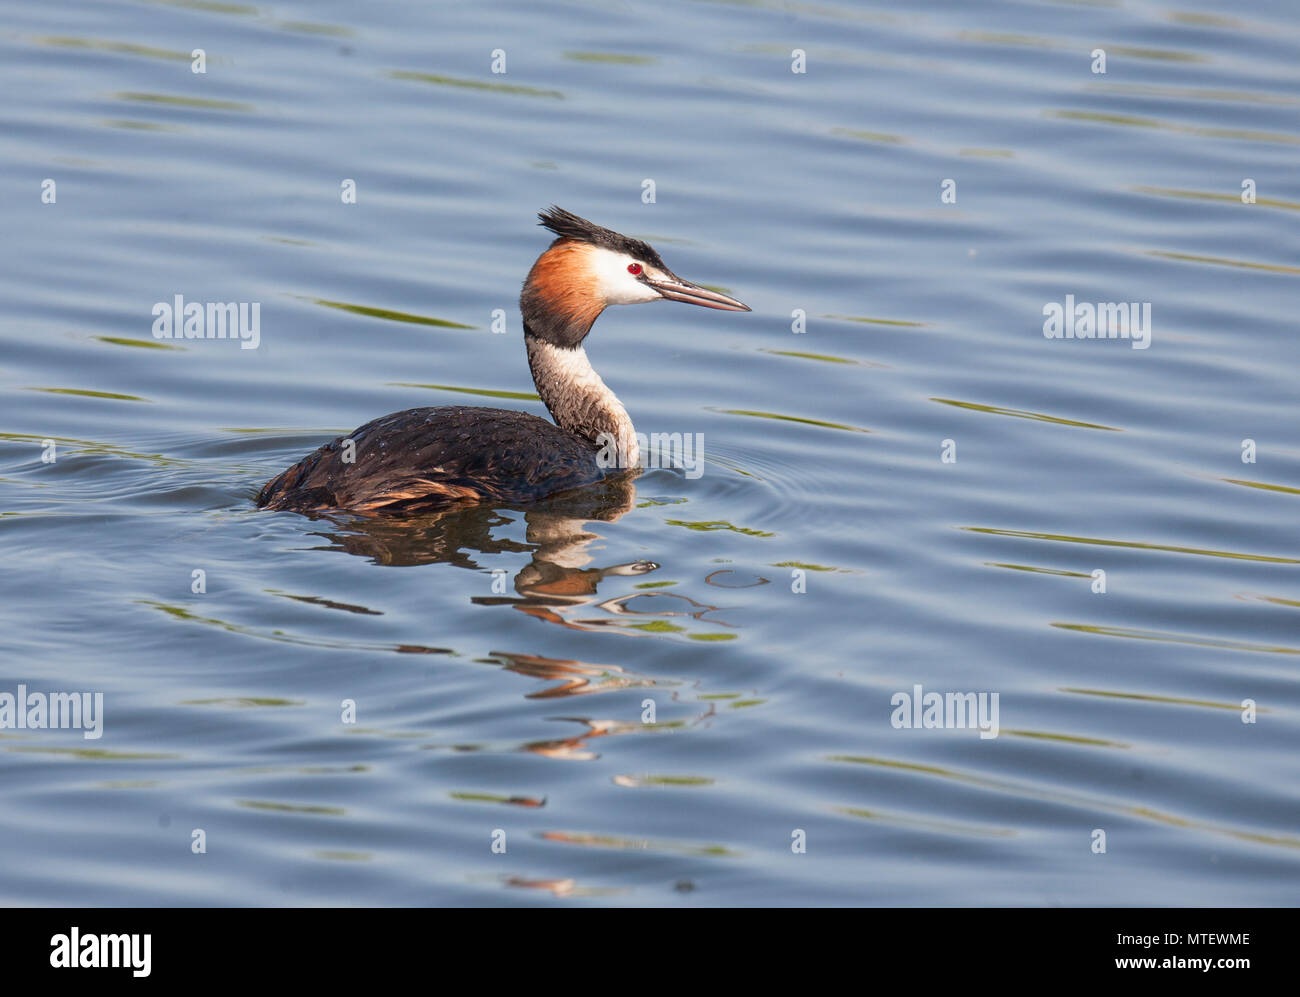 GREAT CRESTED GREBE 2018 - Stock Image